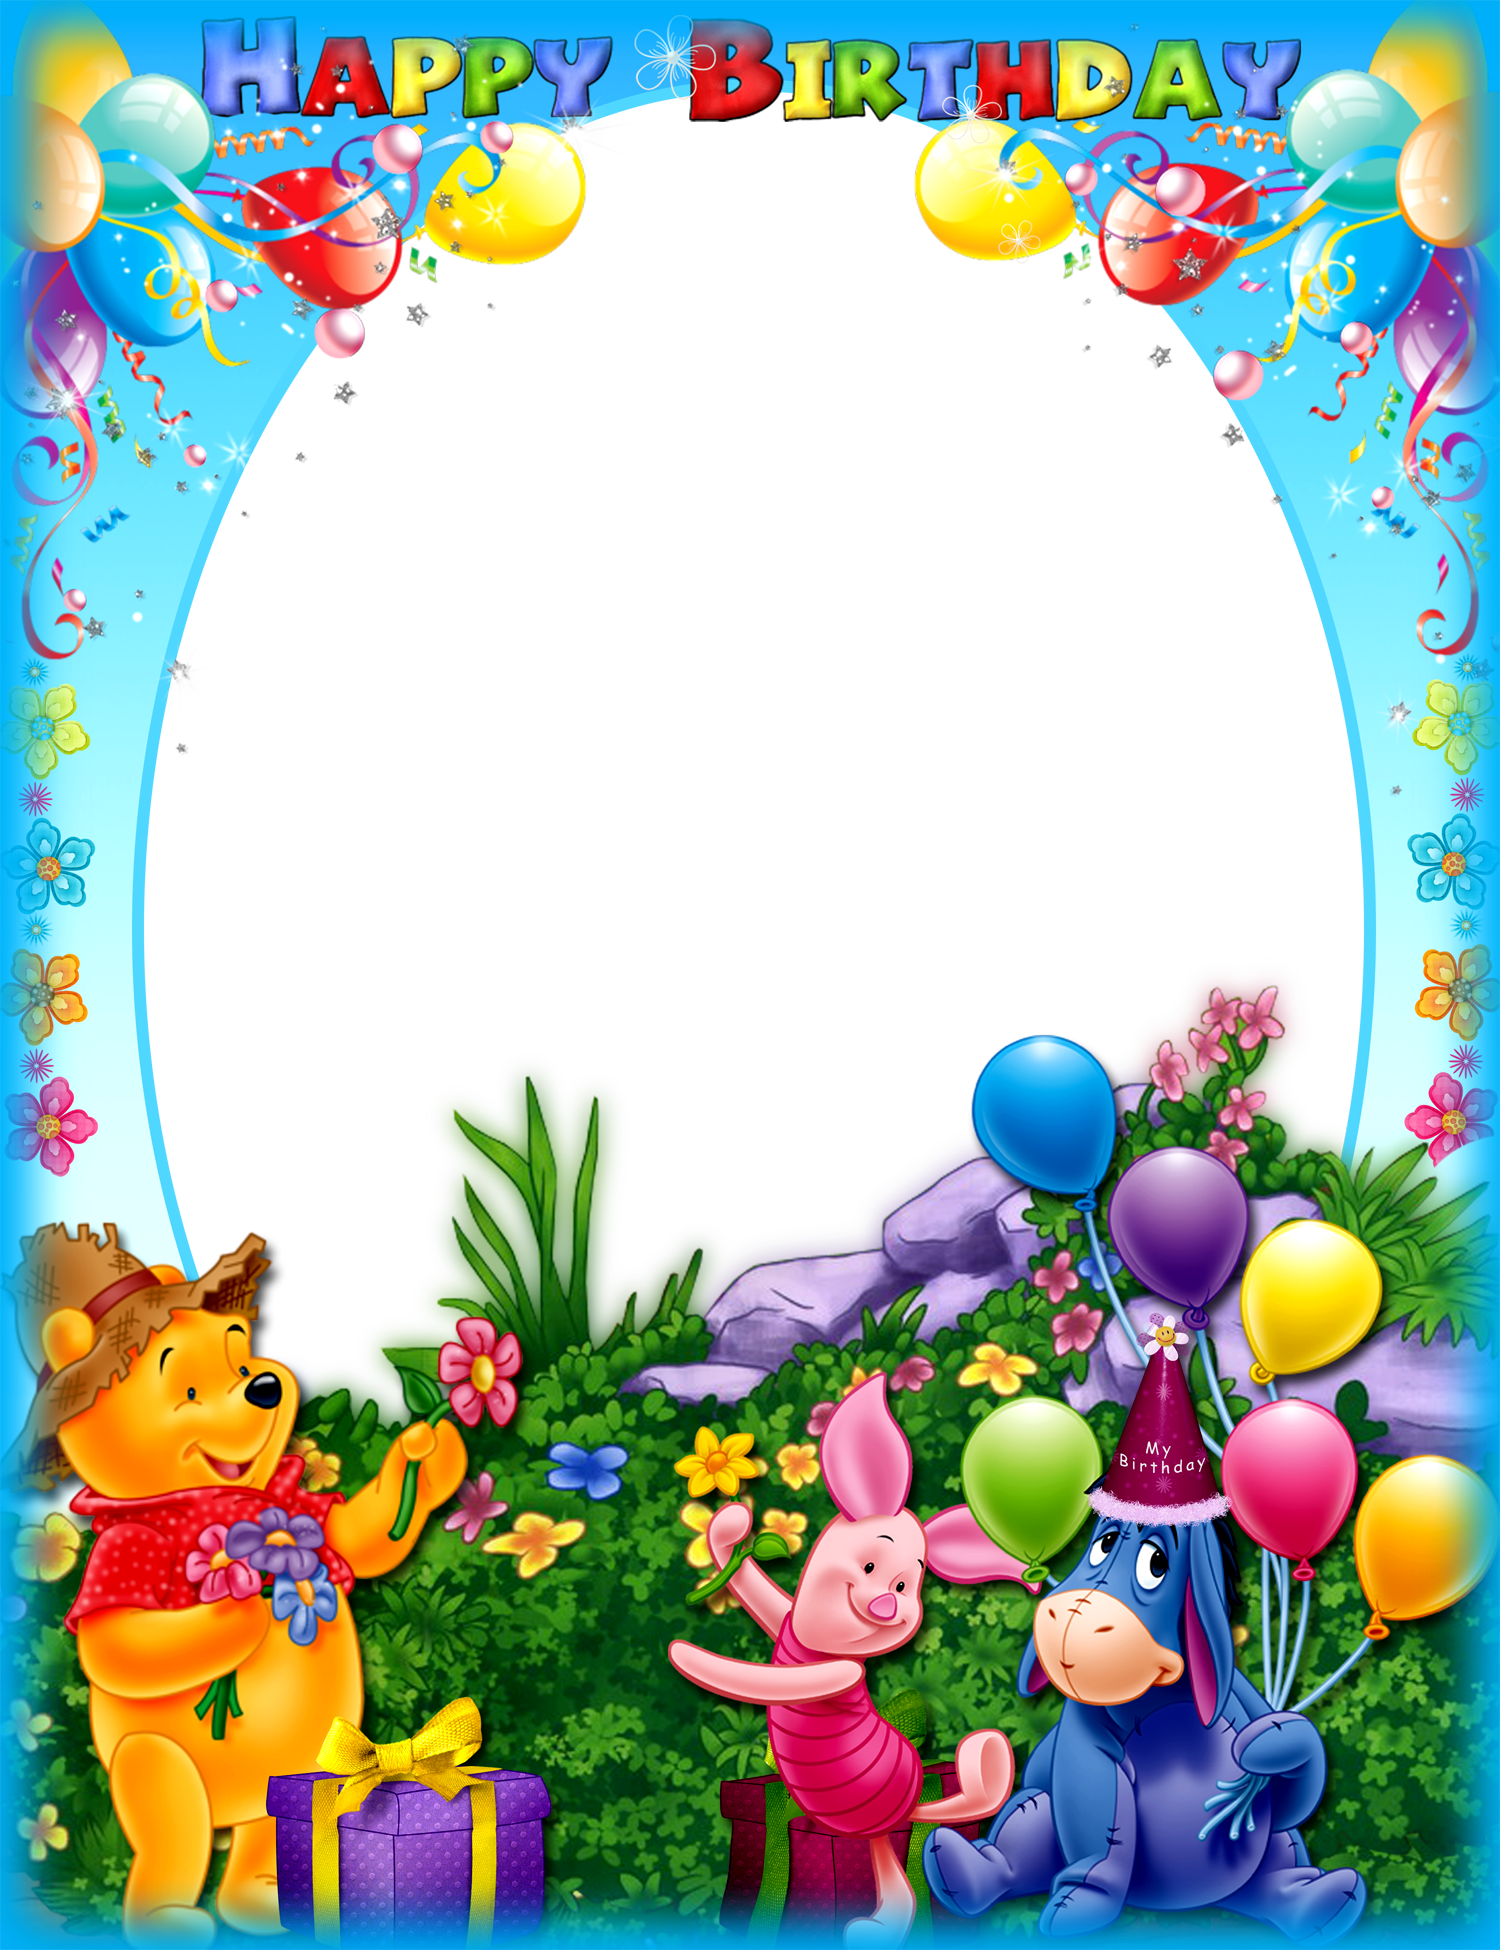 Clipart birthday picture frame. Png images free download